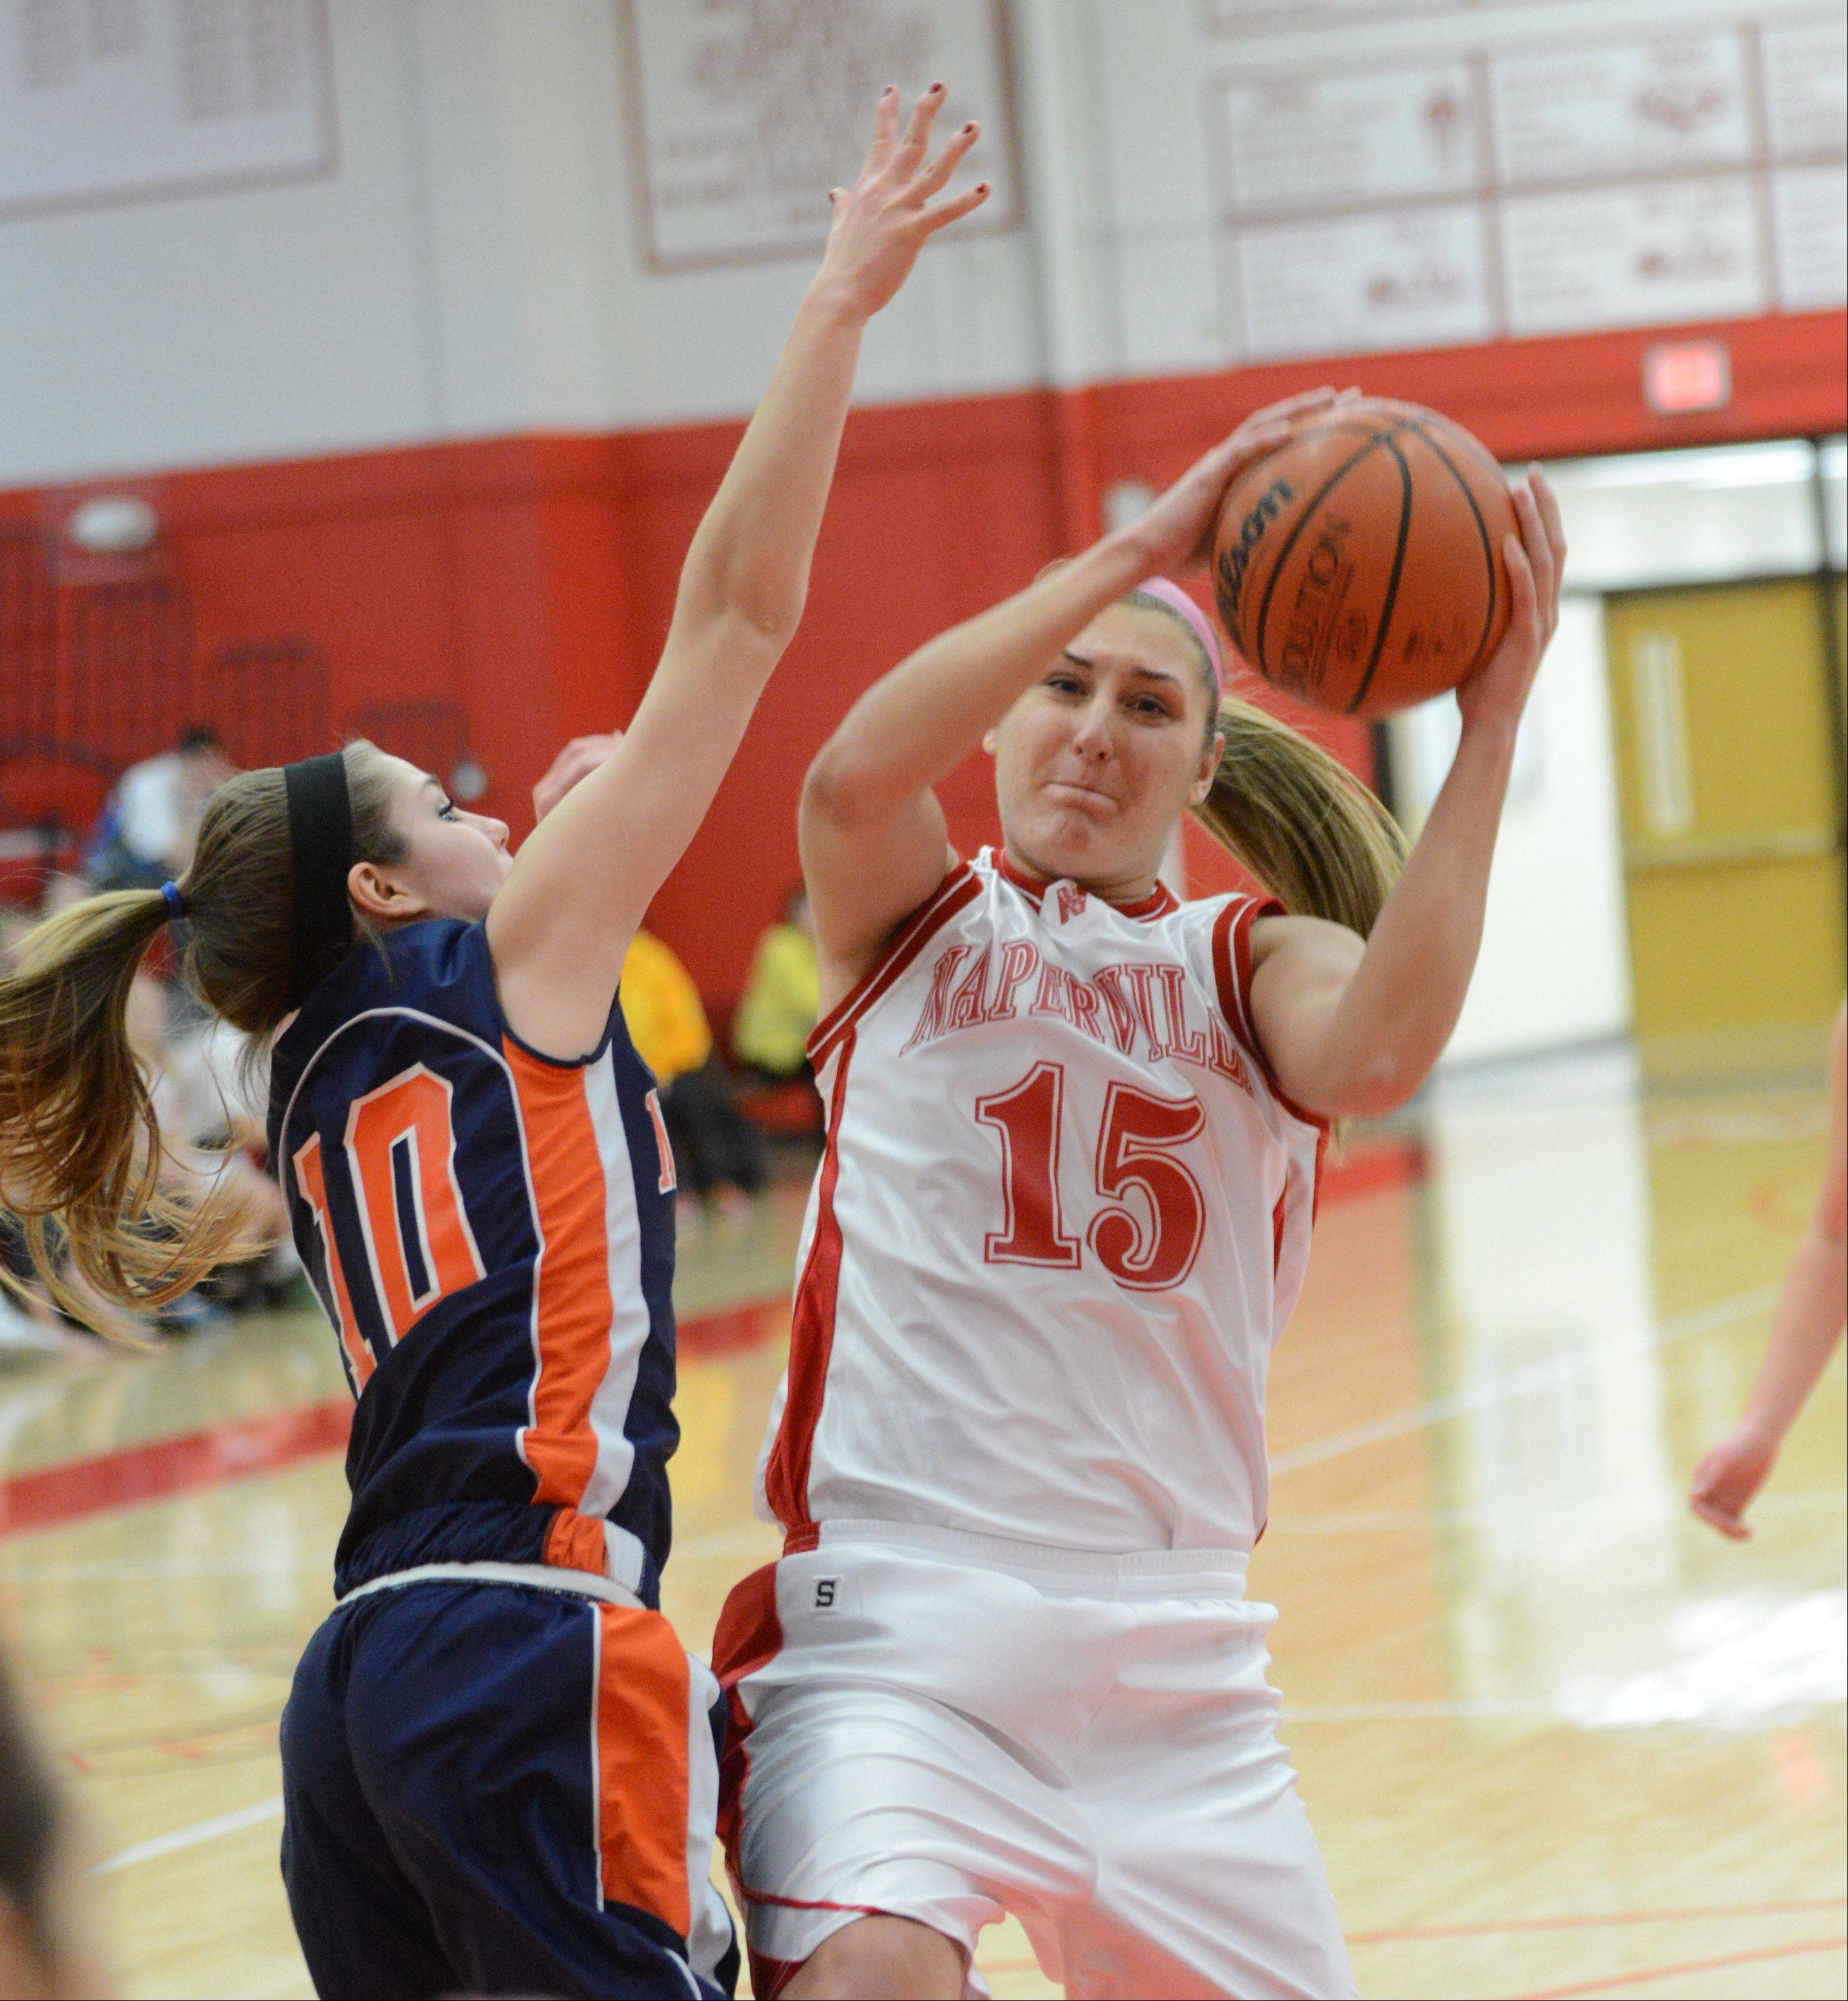 Naperville Central hosted Naperville North Thursday night for girls basketball.